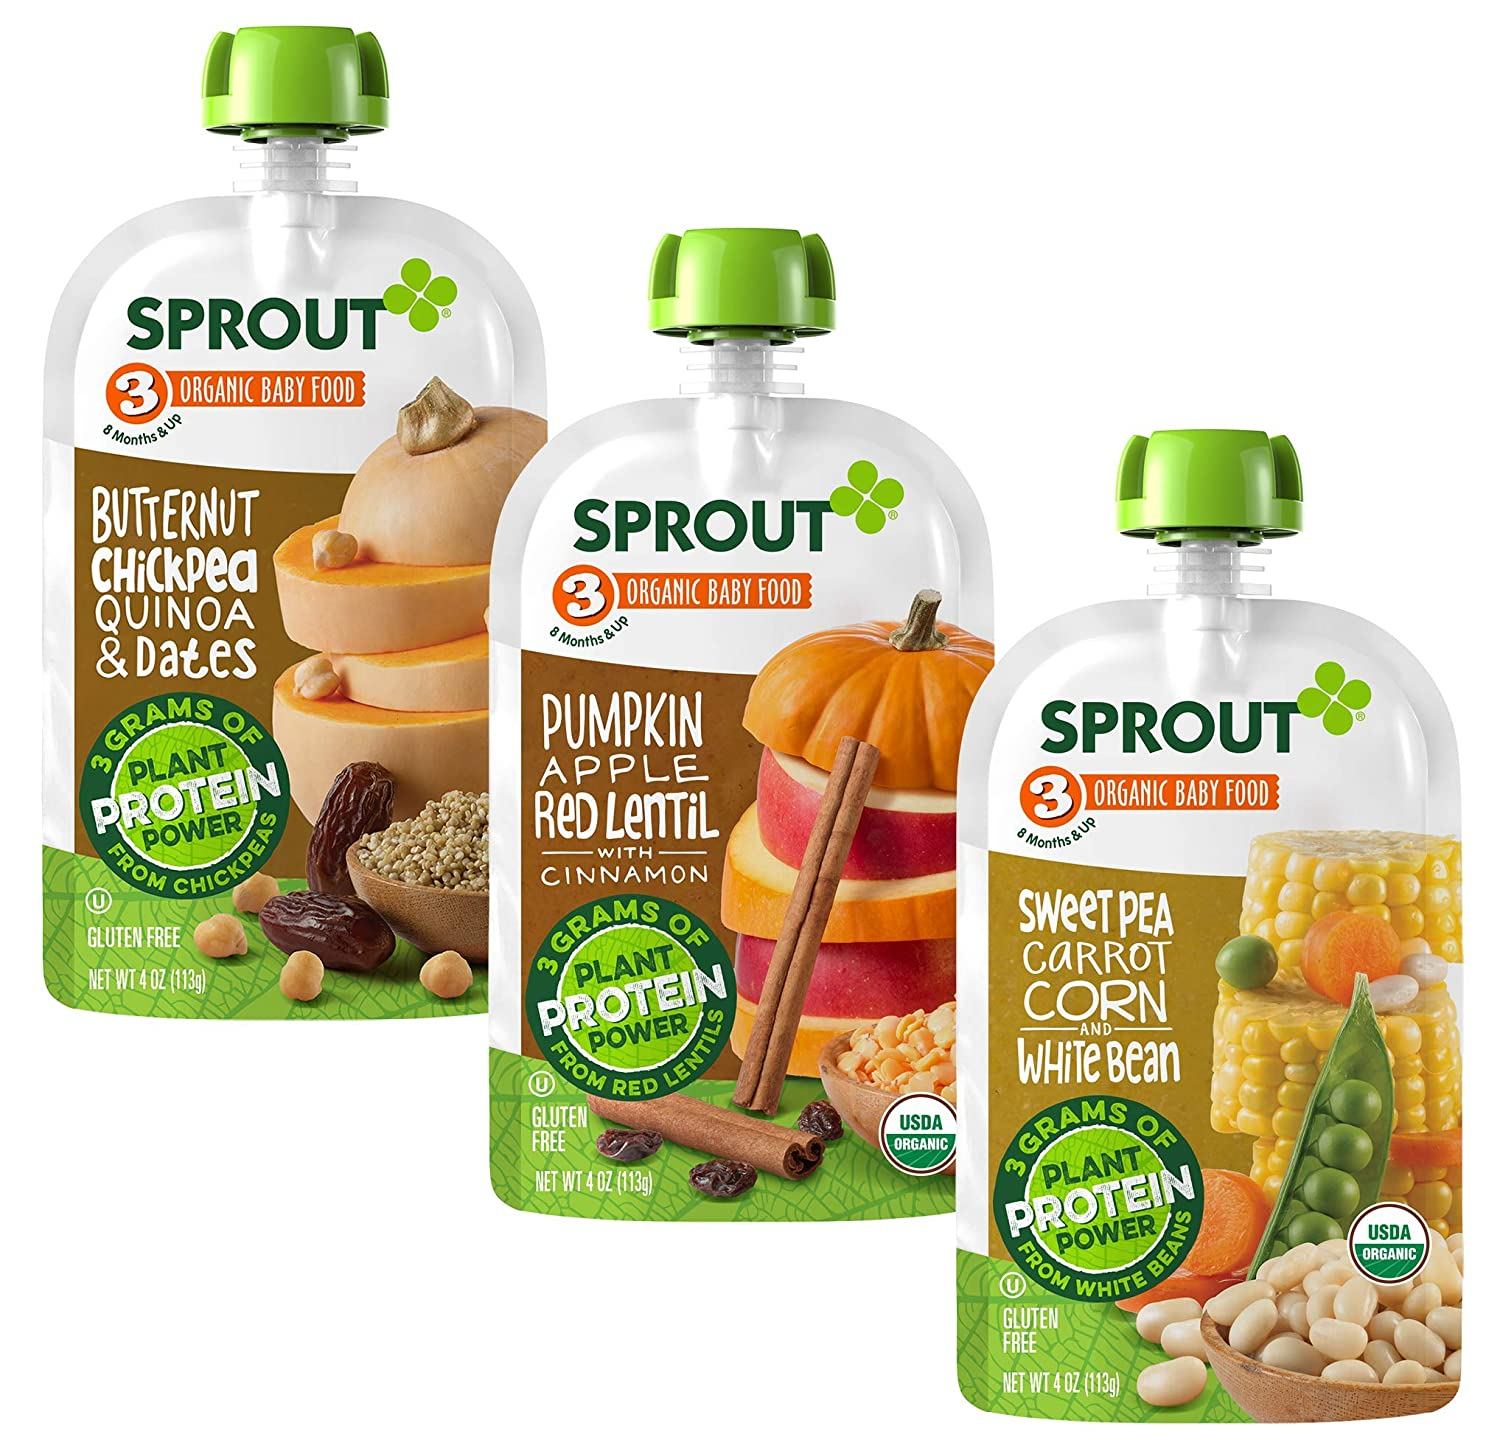 Sprout Organic Baby Food Pouches Stage 3 Plant Powered Protein, Butternut Chickpea Quinoa Date, Pumpkin Apple Lentil, and Sweet Pea Corn Carrot White Bean Variety Pack, 4 Ounce Pouches (Pack of 18)